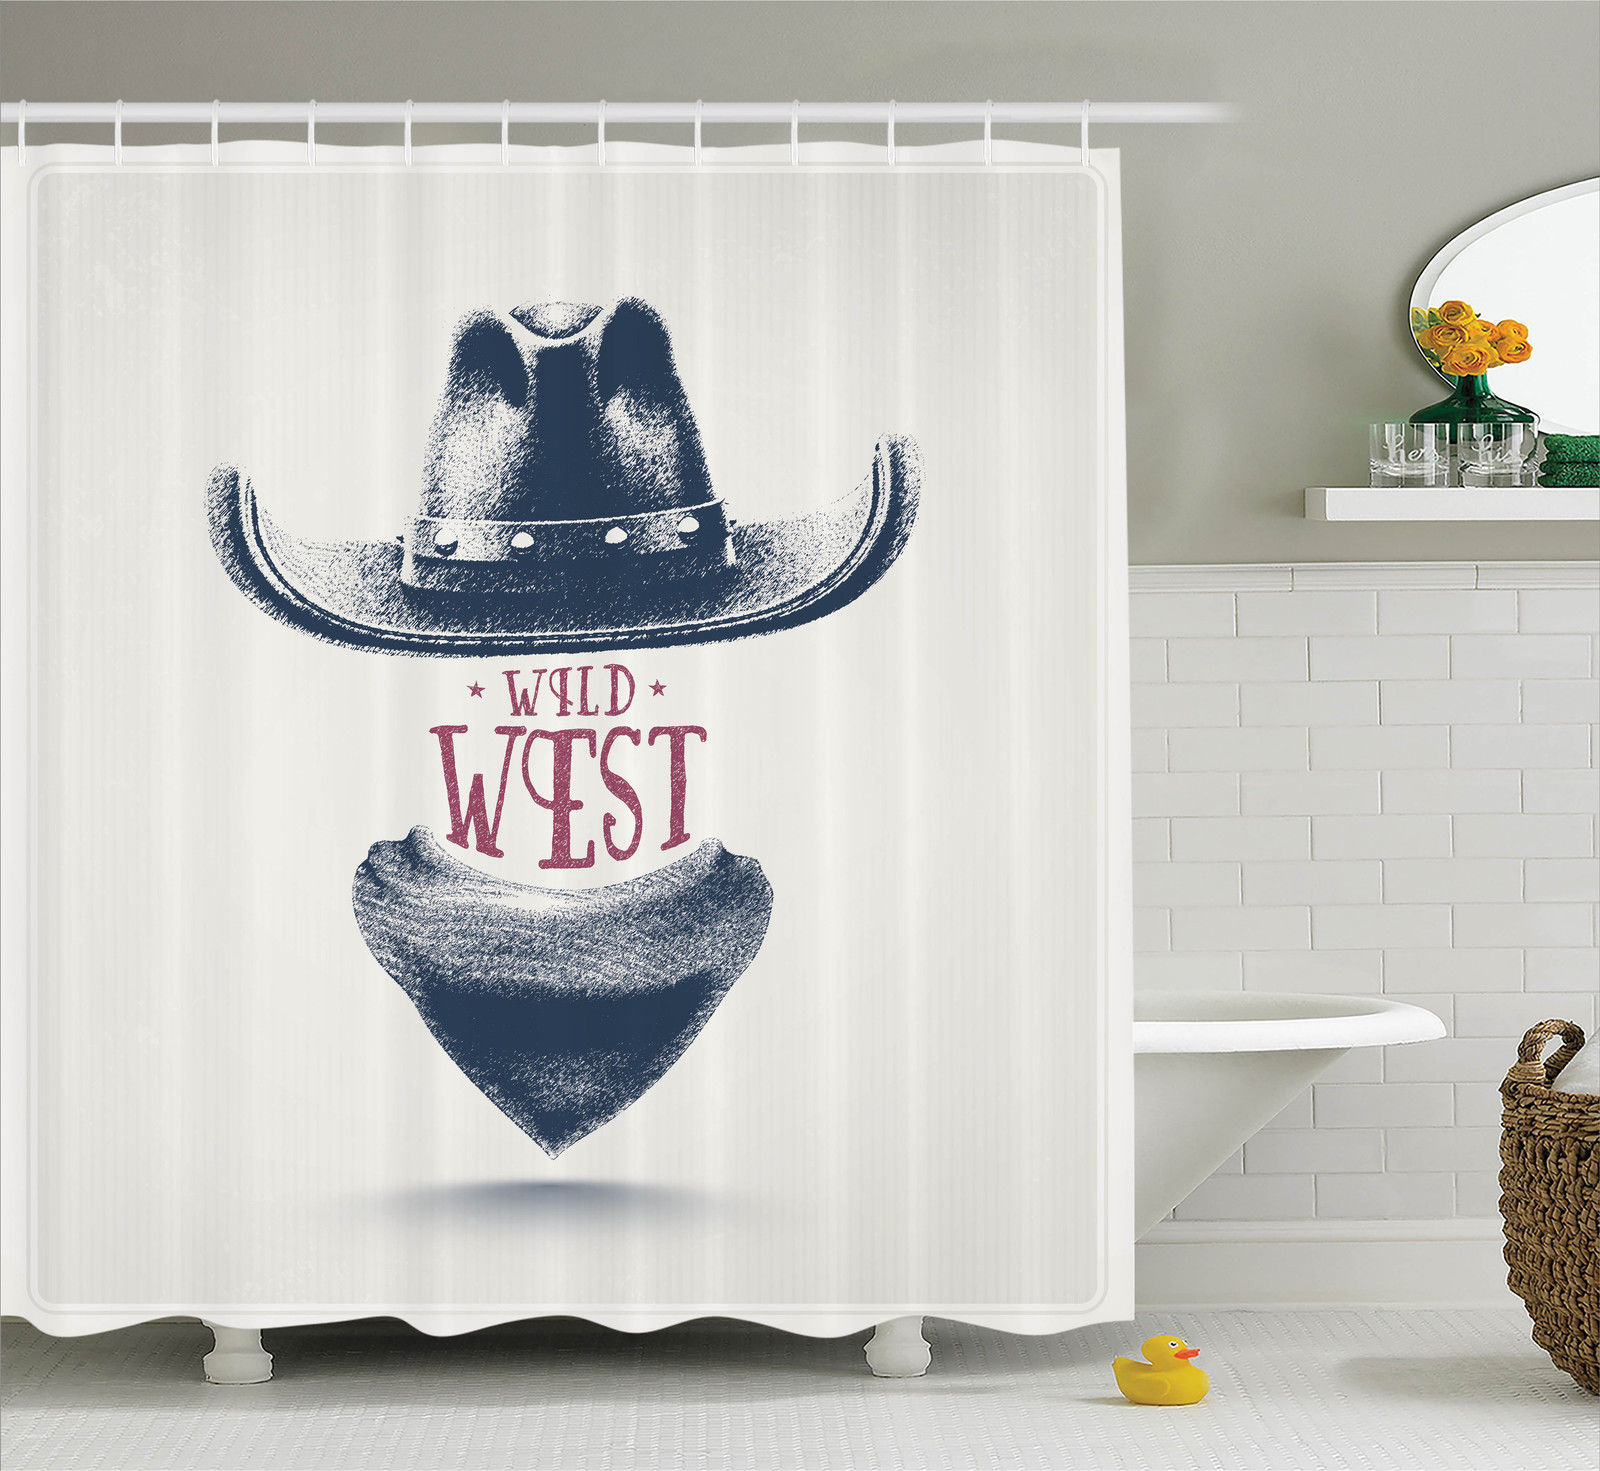 Western Decor Graphic Design Of Wild West Cowboy Hat And Scarf In Vintage Colors American New Old, Bathroom Accessories, 69W X 84L Inches Extra Long, By Ambesonne